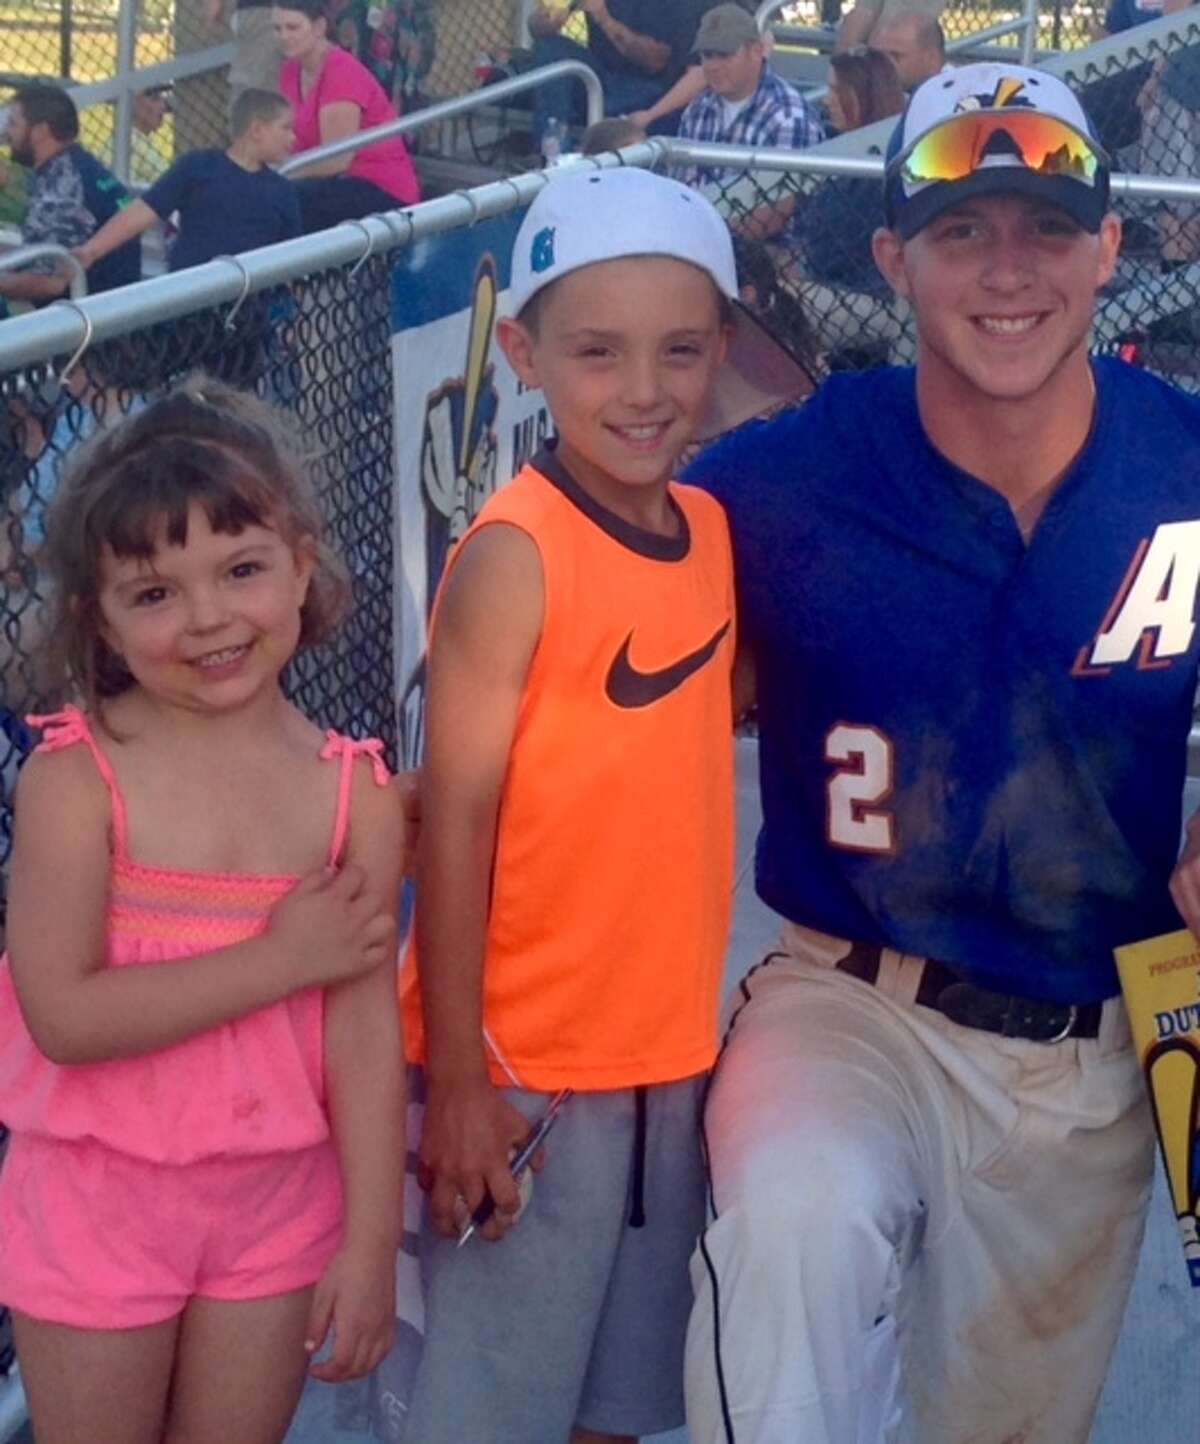 Albany Dutchmen player Justin Childers poses with Ryan Scholz, center, and Ava Scholz, part of the host family that houses Childers during the season. (Courtesy of Scholz family)